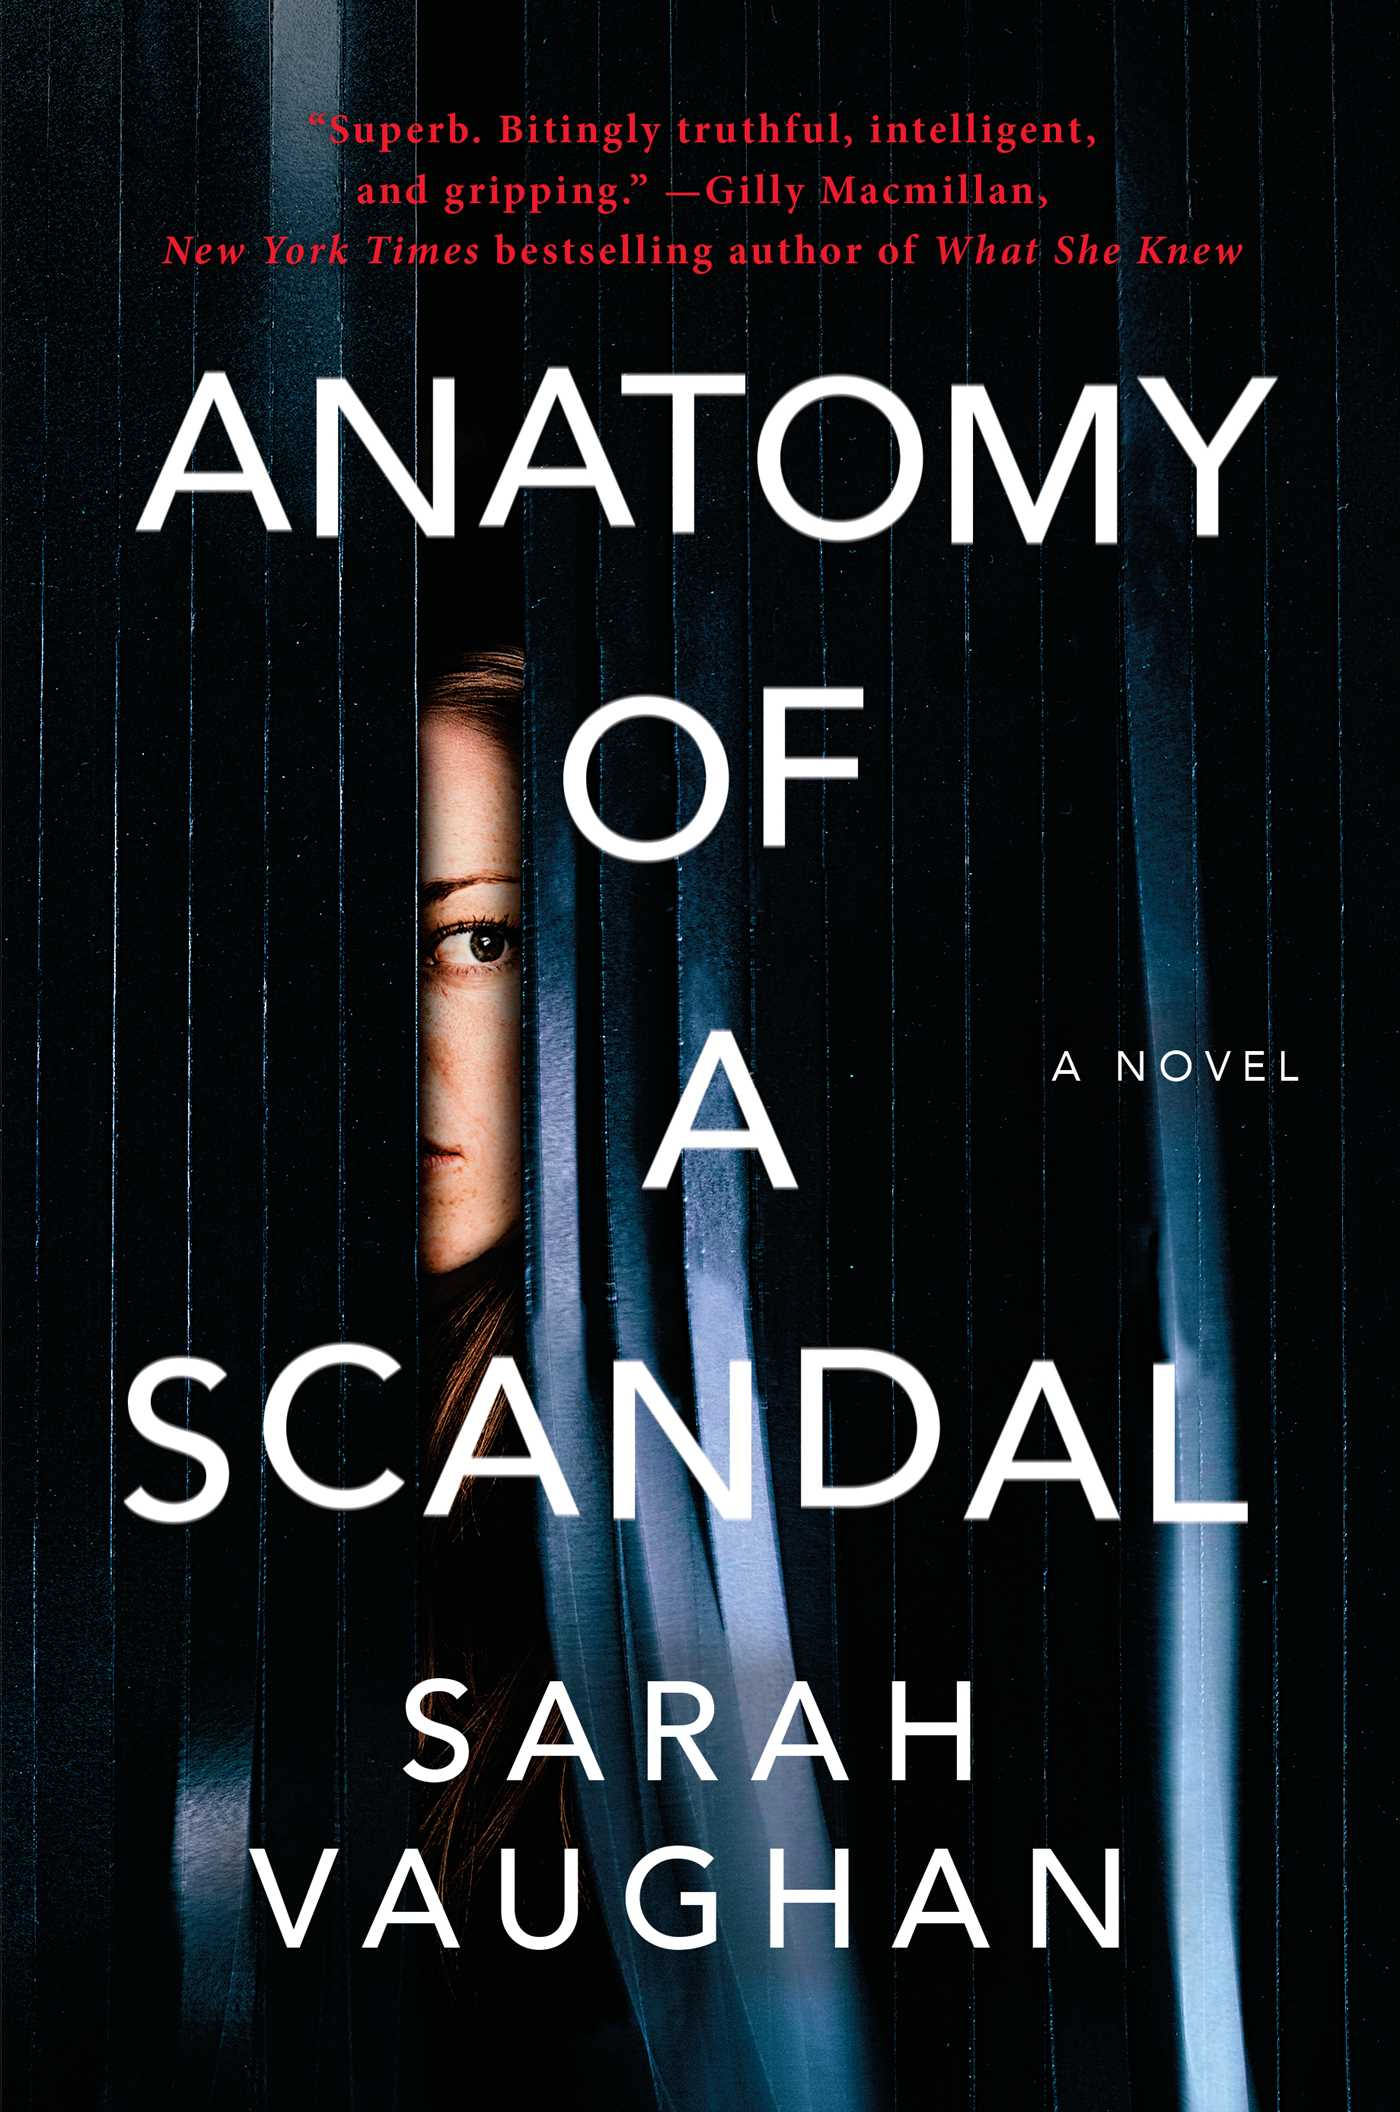 Excerpt: Anatomy of a Scandal